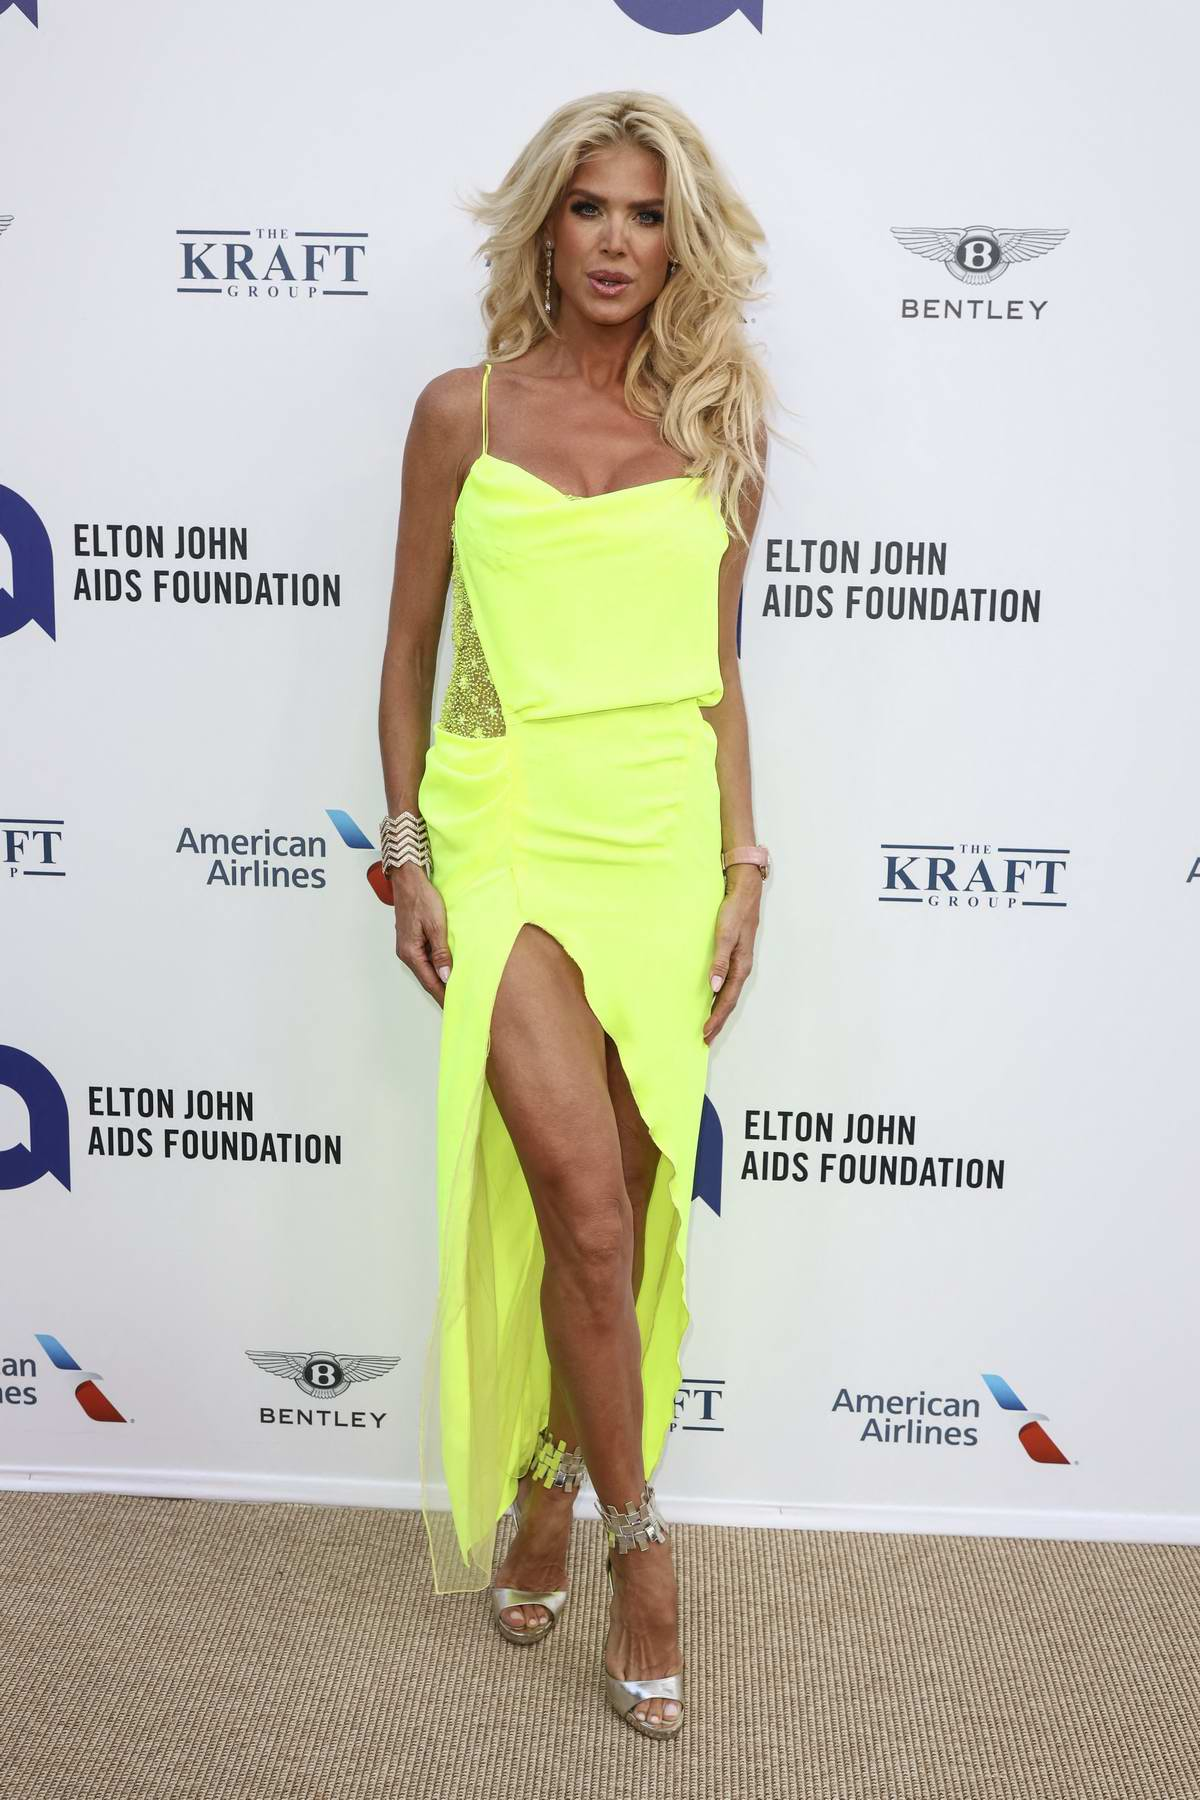 Victoria Silvstedt attends the Midsummer Party to benefit the Elton John AIDS Foundation held at Villa Dorane, Antibes, France